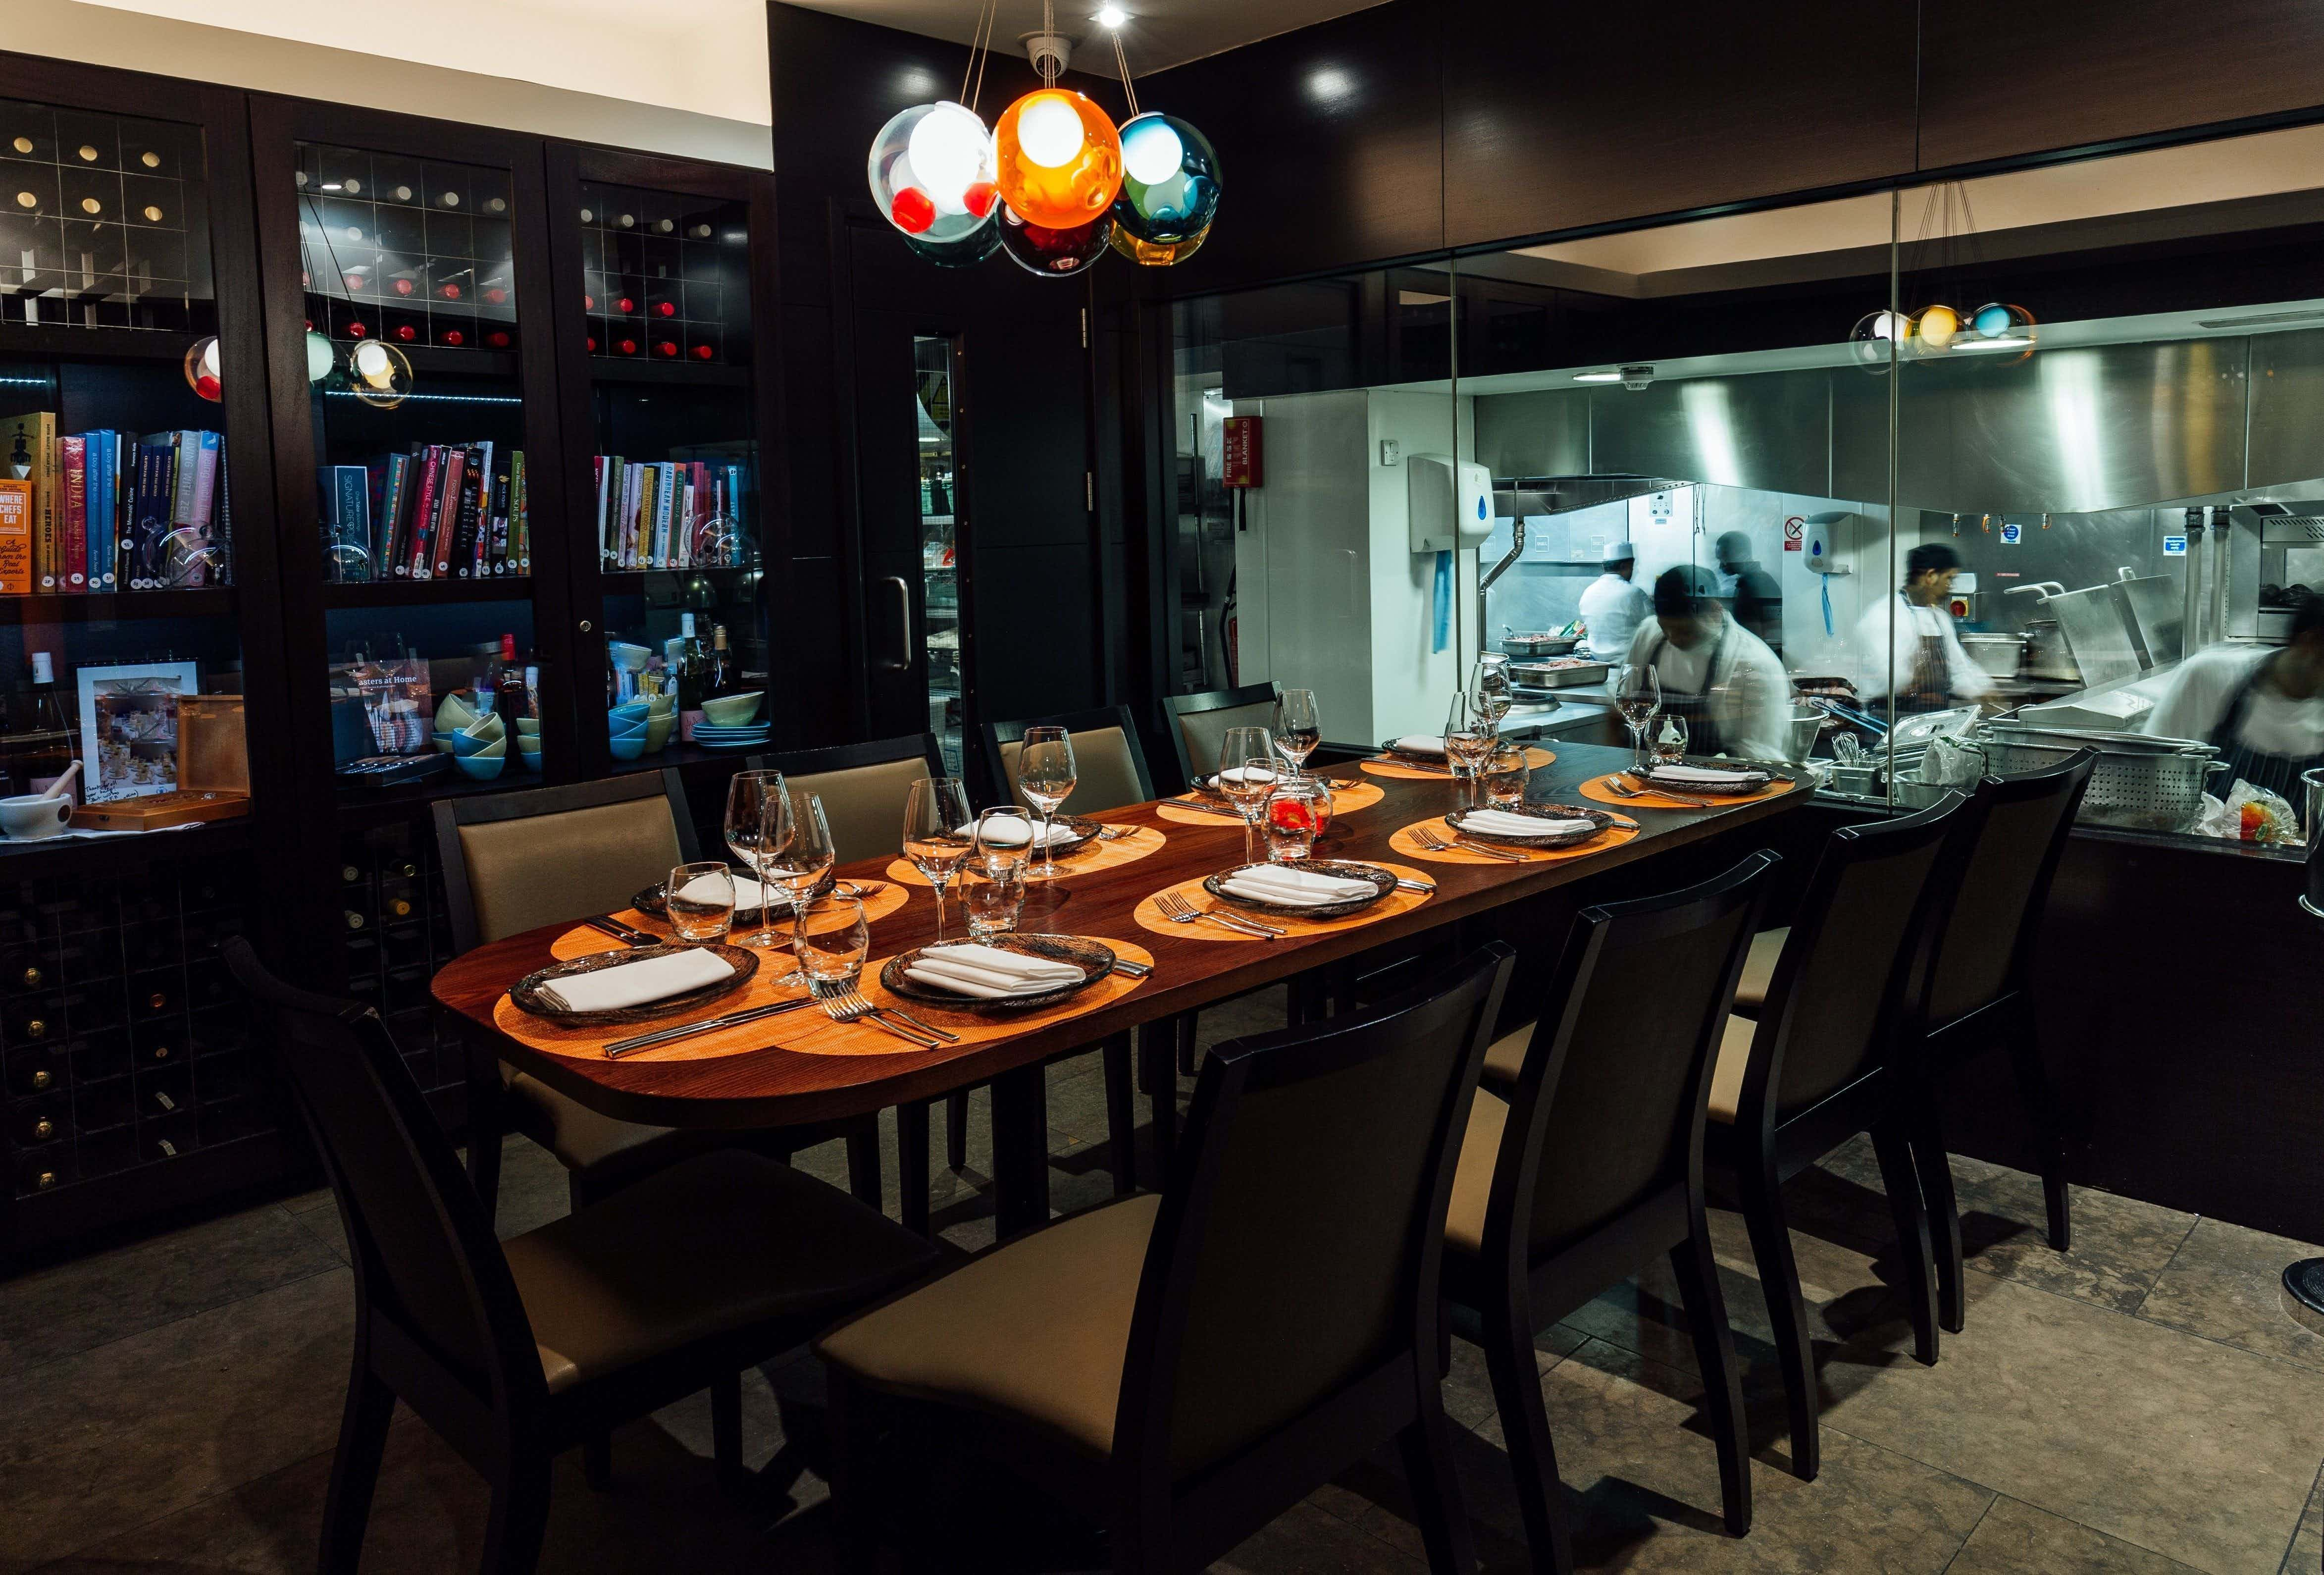 Chef's Table, Benares Restaurant & Bar